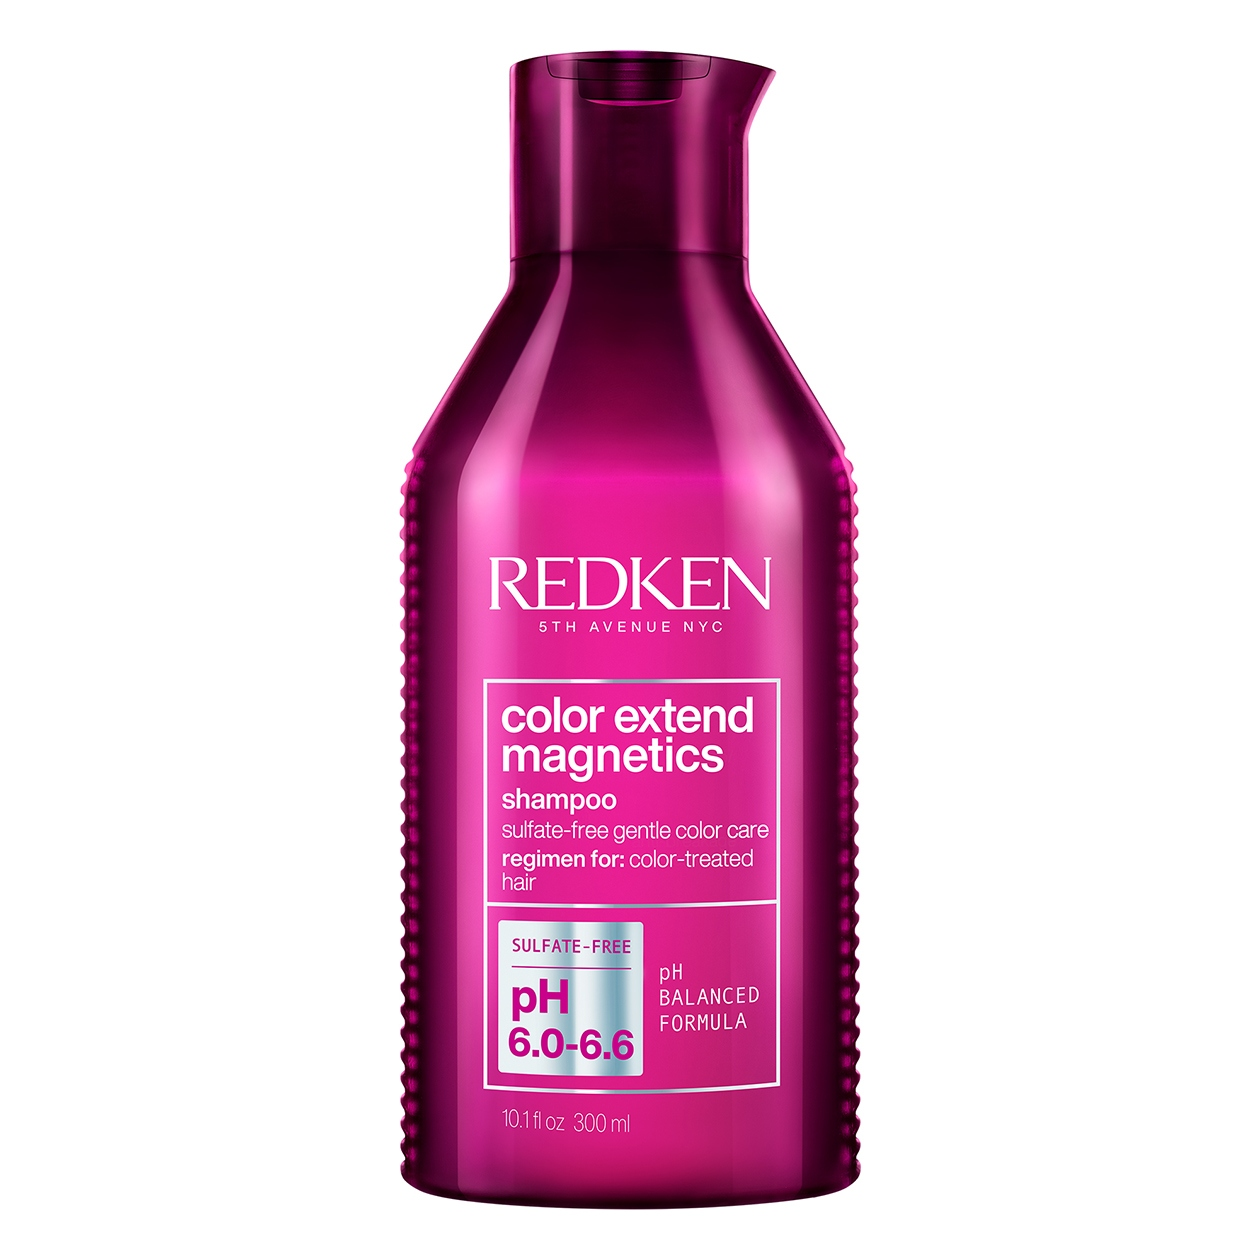 COLOR EXTEND MAGNETICS SULFATE-FREE SHAMPOO 300ml